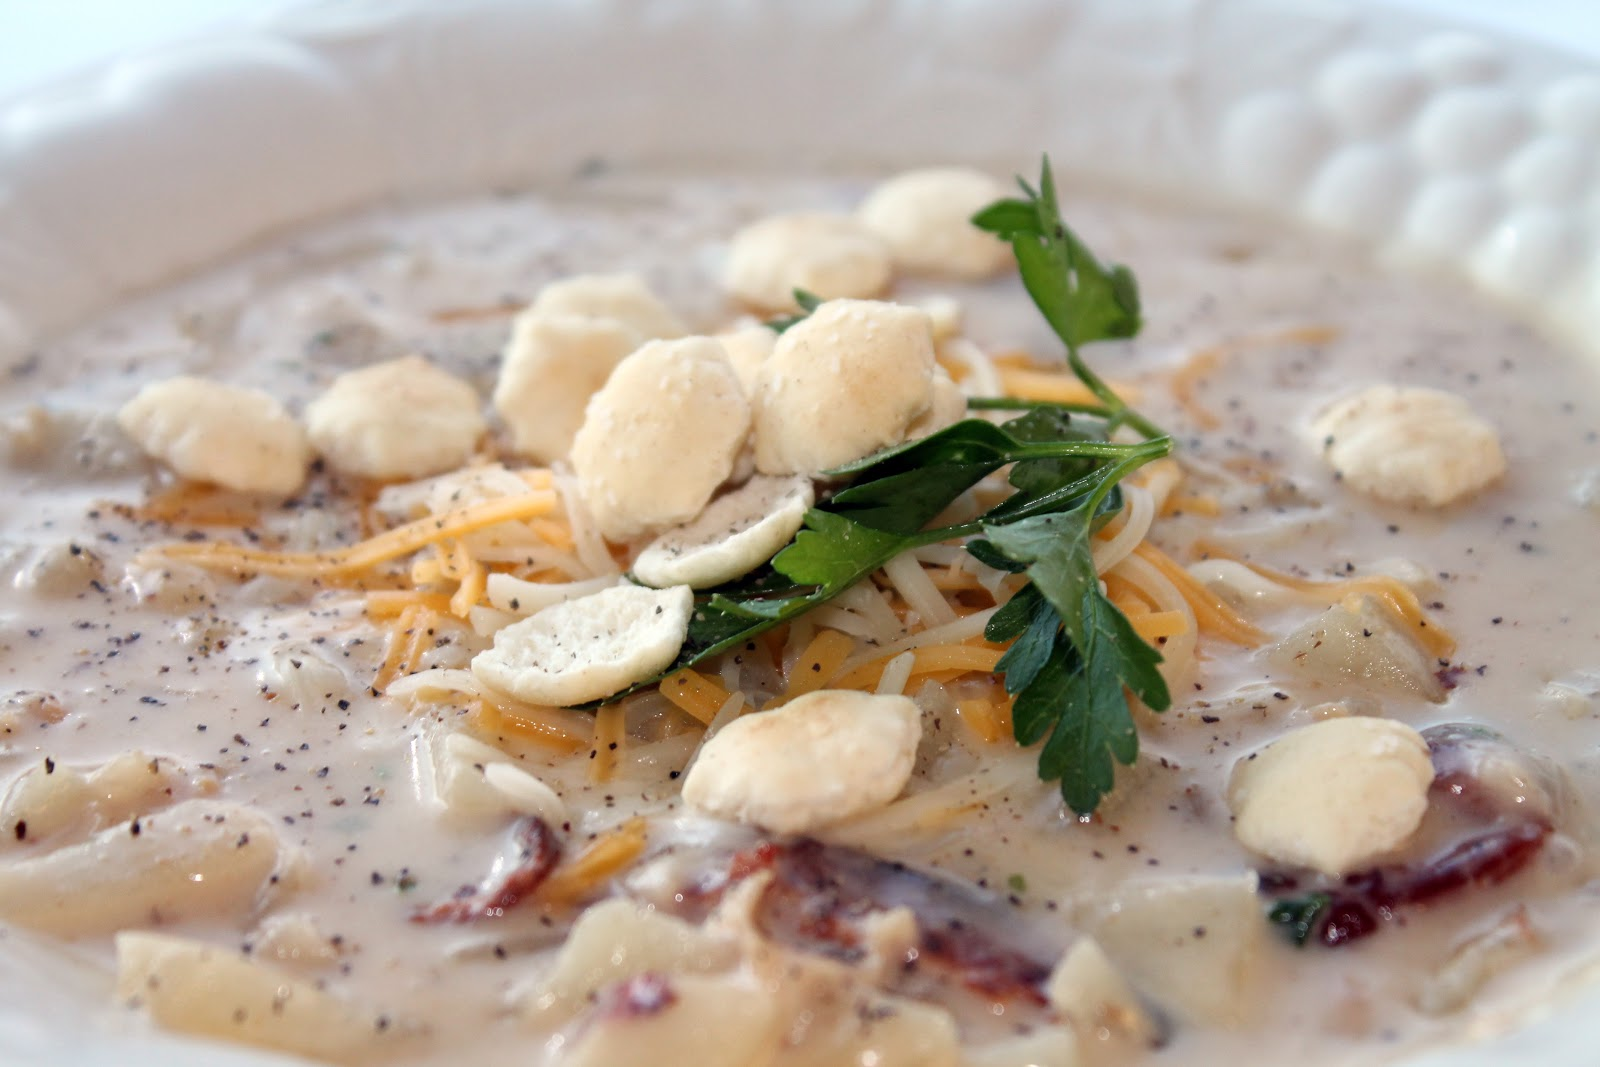 Riches to Rags* by Dori: New England Clam Chowder...